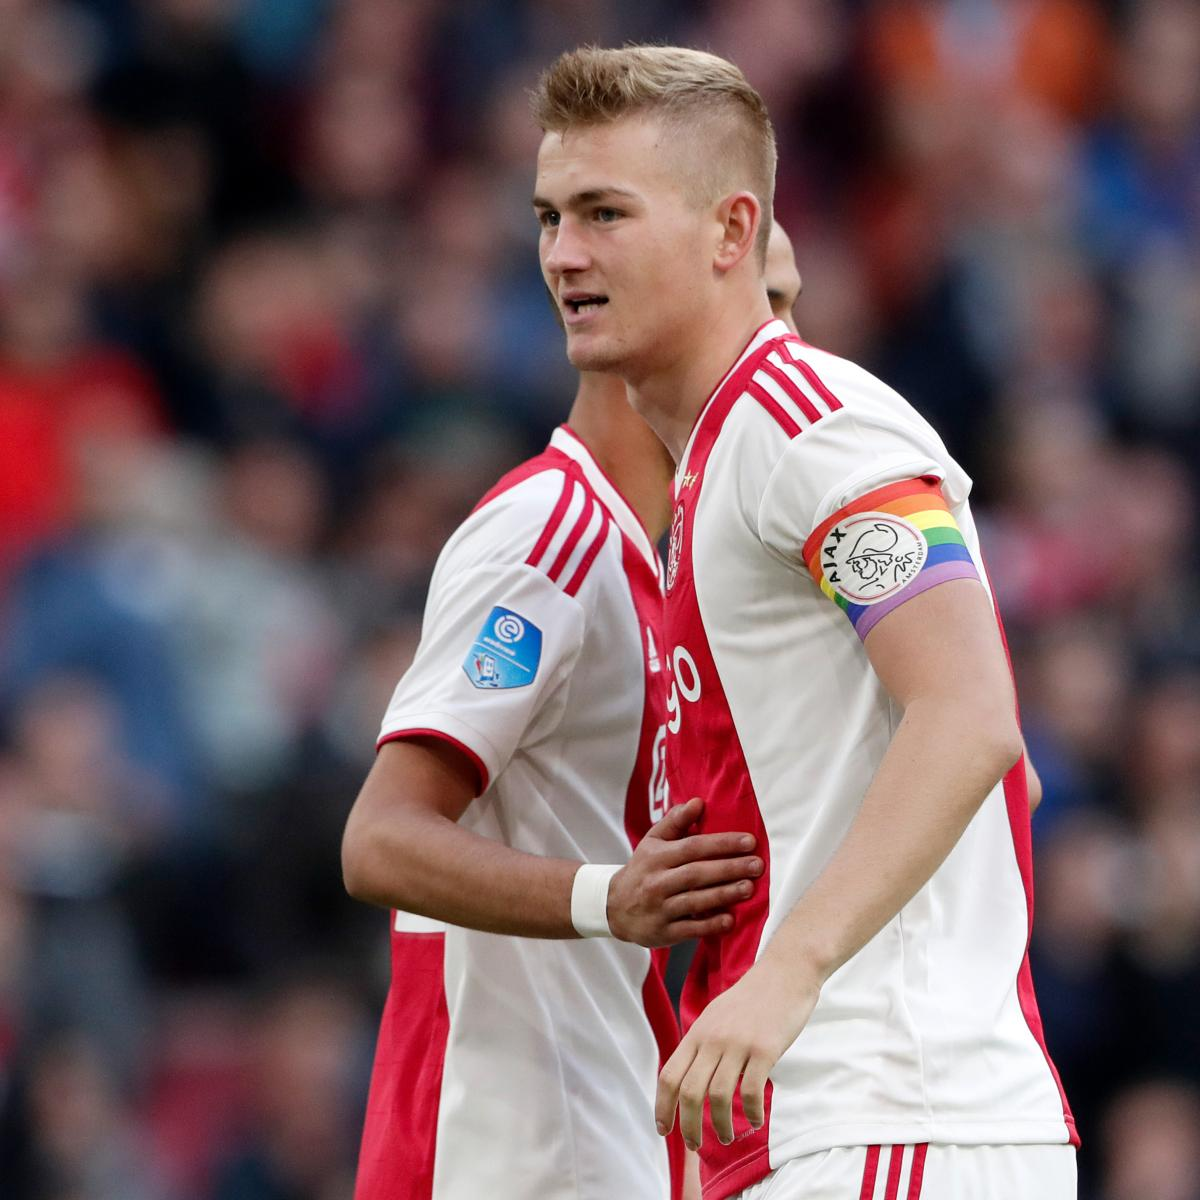 Report: Mino Raiola Could Persuade Matthijs de Ligt to Reject Manchester United